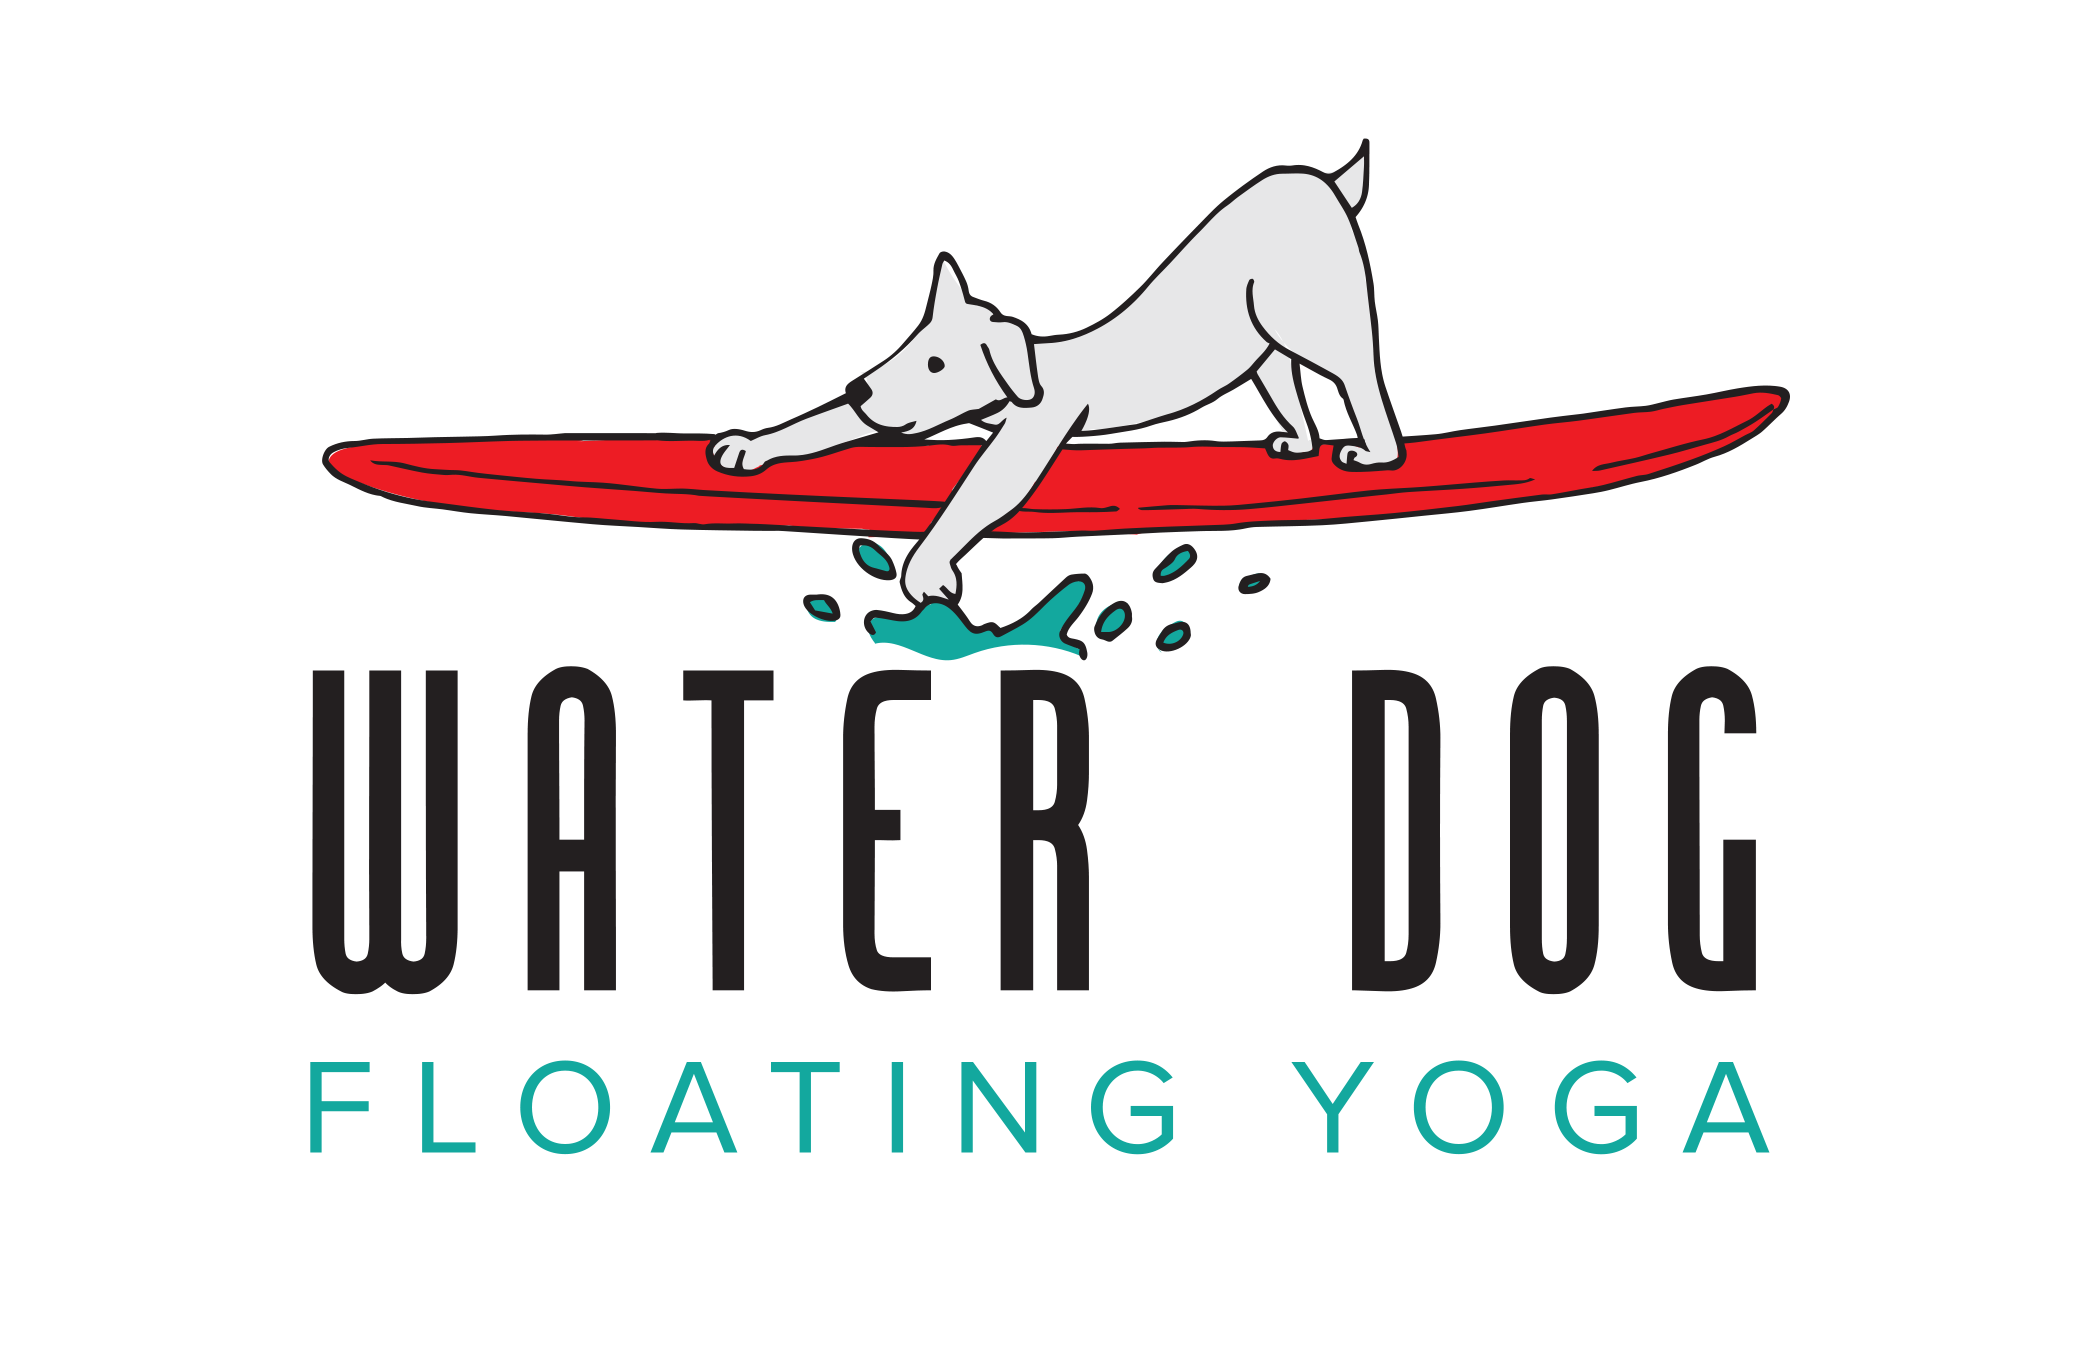 Dogs clipart yoga. Rates waterdog cc floating